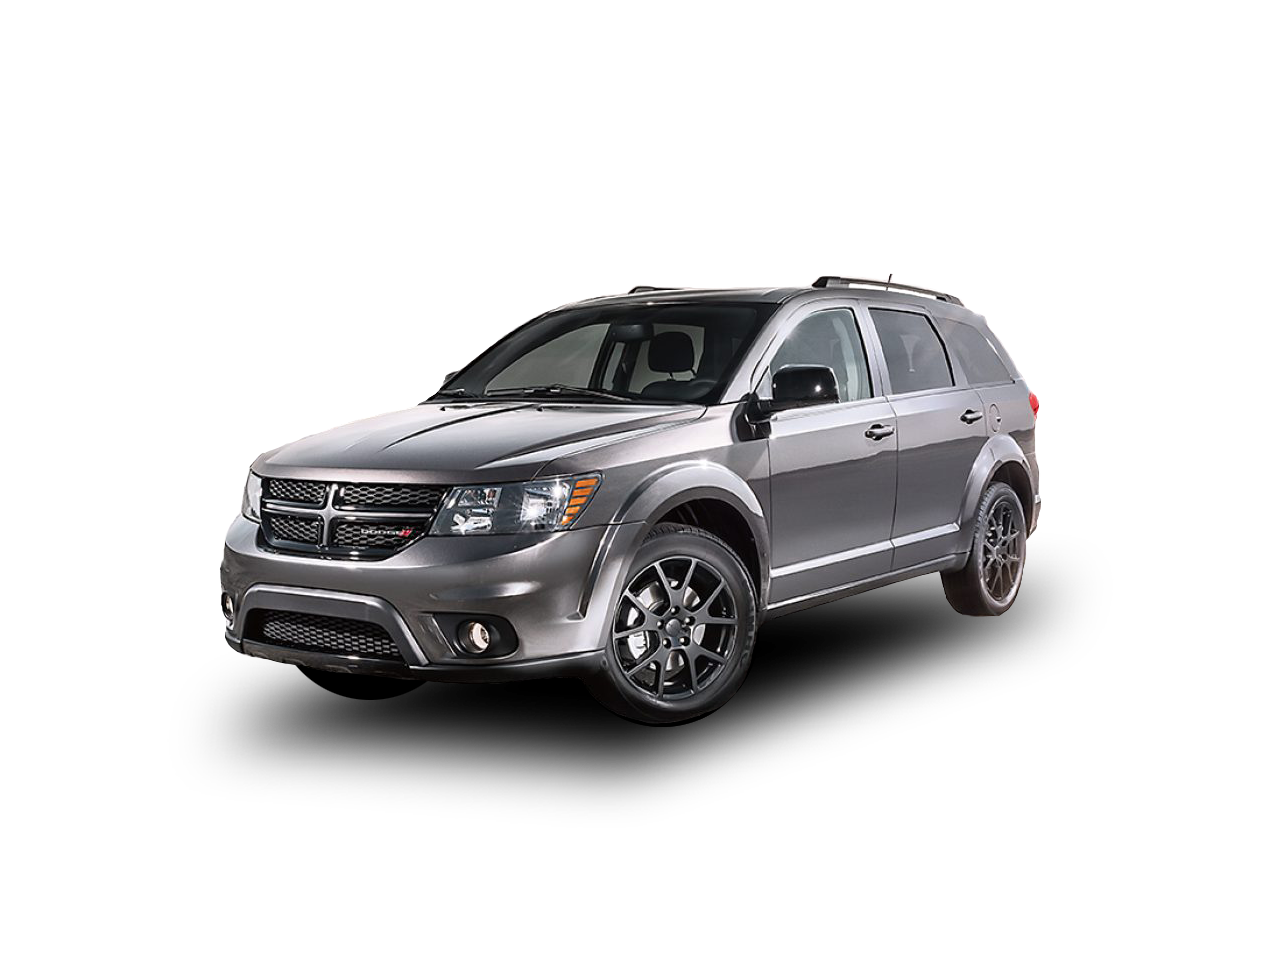 Test Drive A 2017 Dodge Journey at Arrigo CDJR West Palm Beach in West Palm Beach